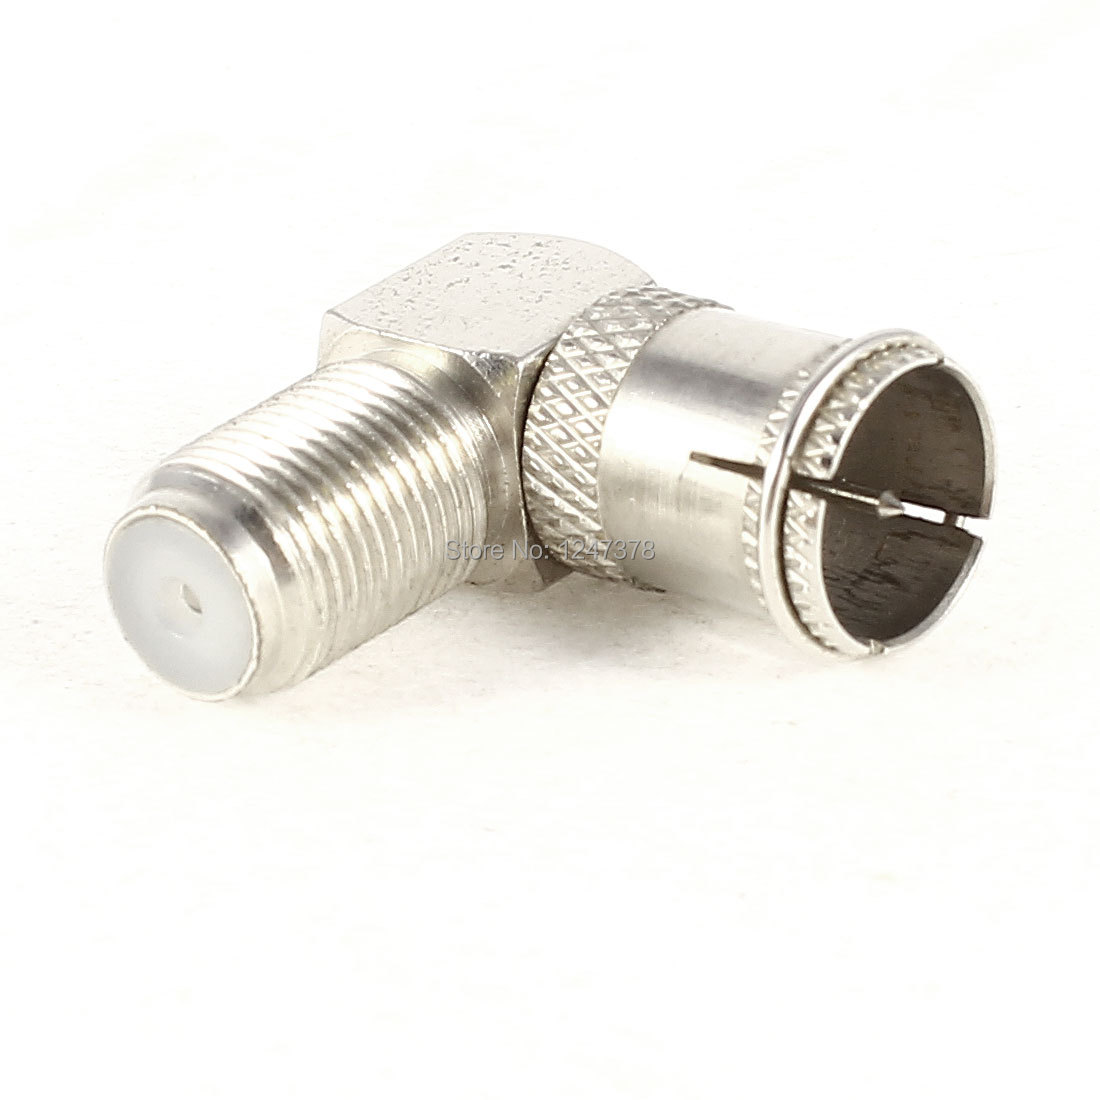 90 Degree F Type Female to Male 9mm Plug Quick TV RF Coaxial Connector Adapter Discount 50 Network(China (Mainland))